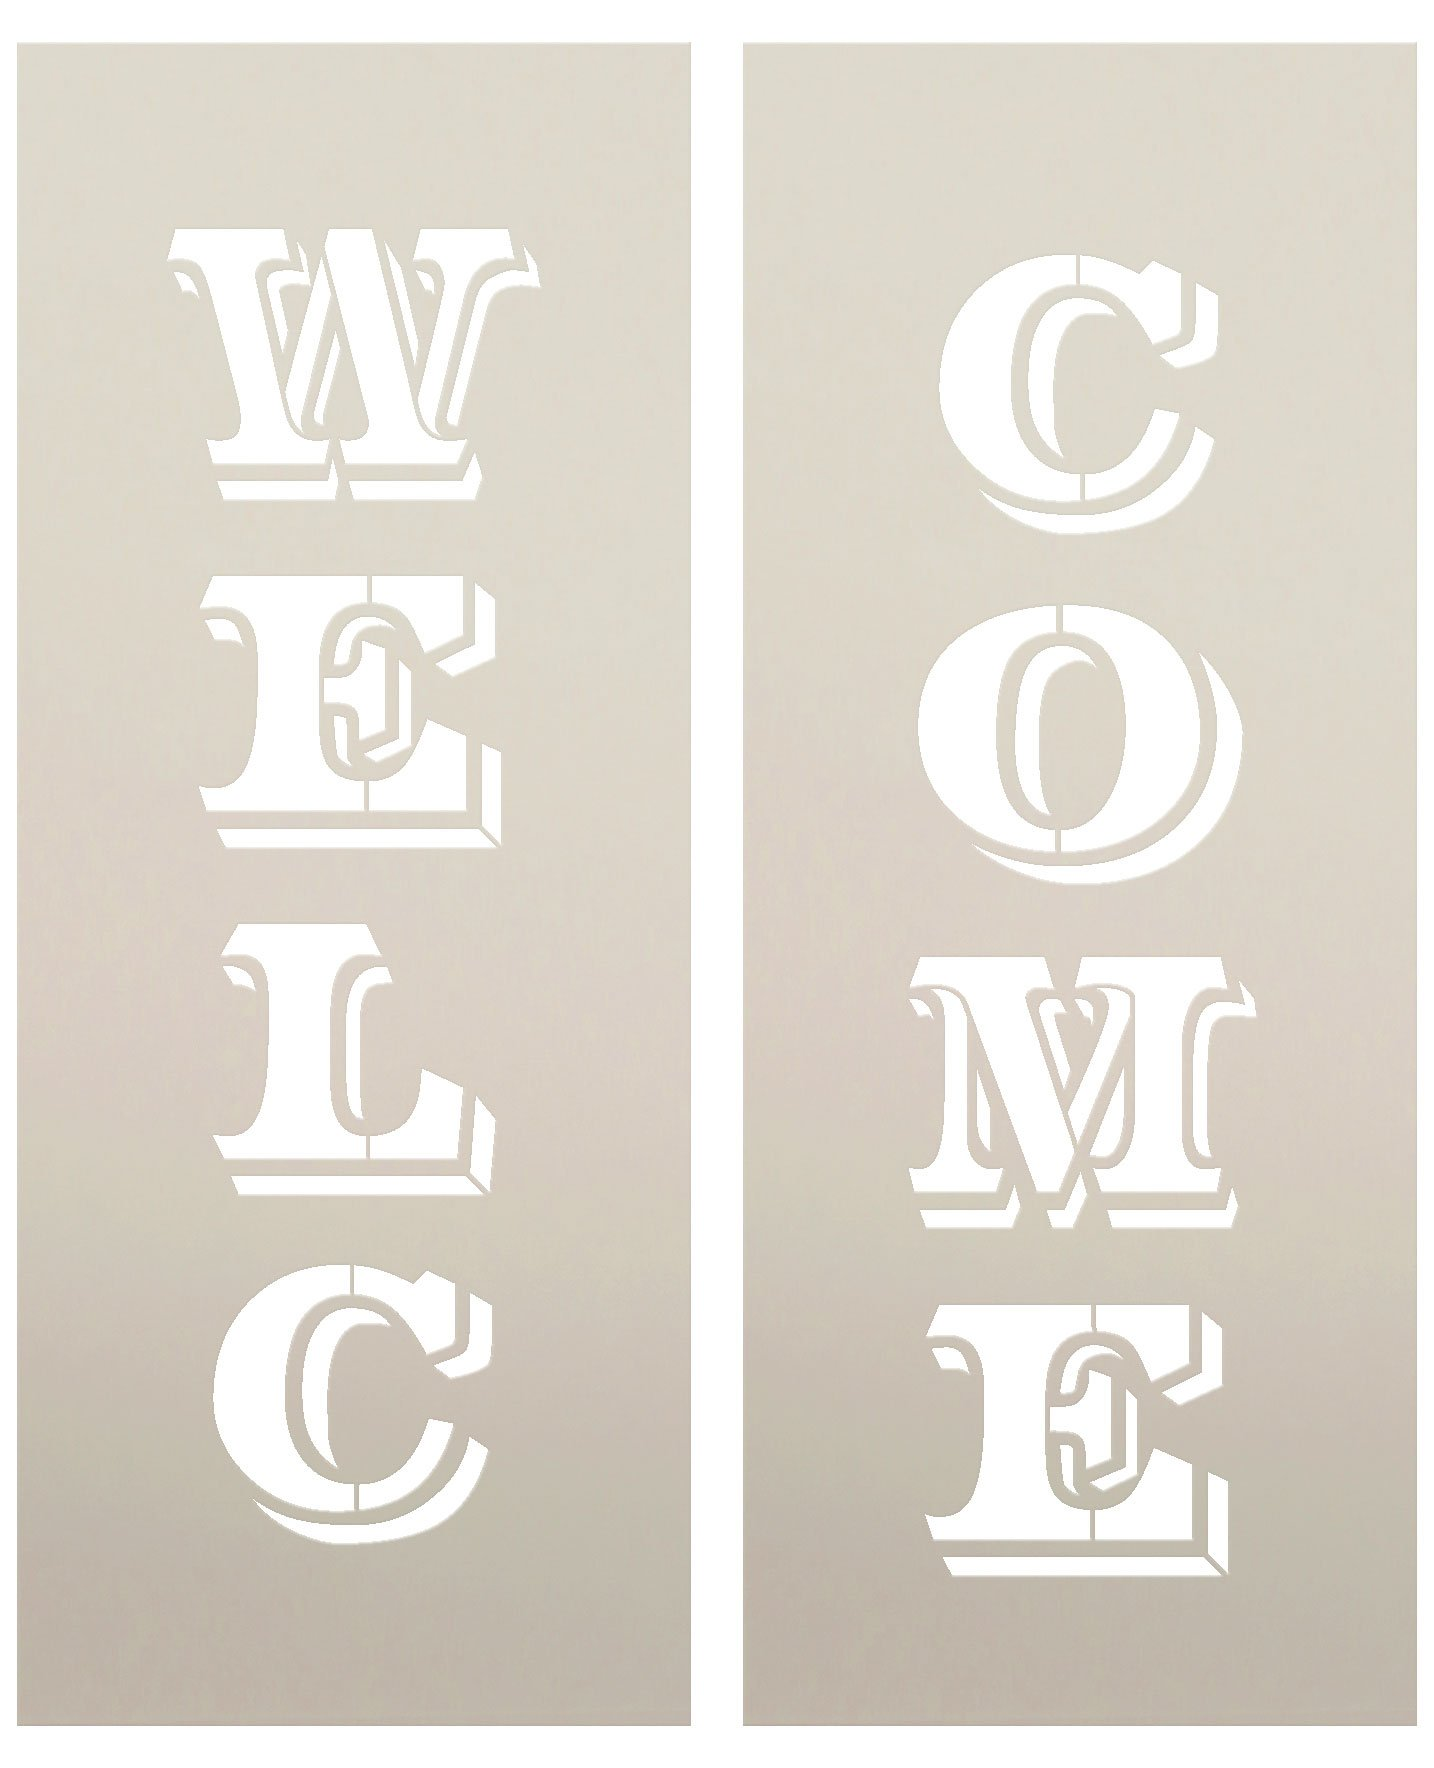 Large 48'' WELCOME STENCIL for Painting on Wood | Reusable Mylar Template| Ideal for DIY Crafting Tall Vertical Patio, Porch Signs - Pallet (Rustic Farmhouse Entrance Sign) 48'' x 12''